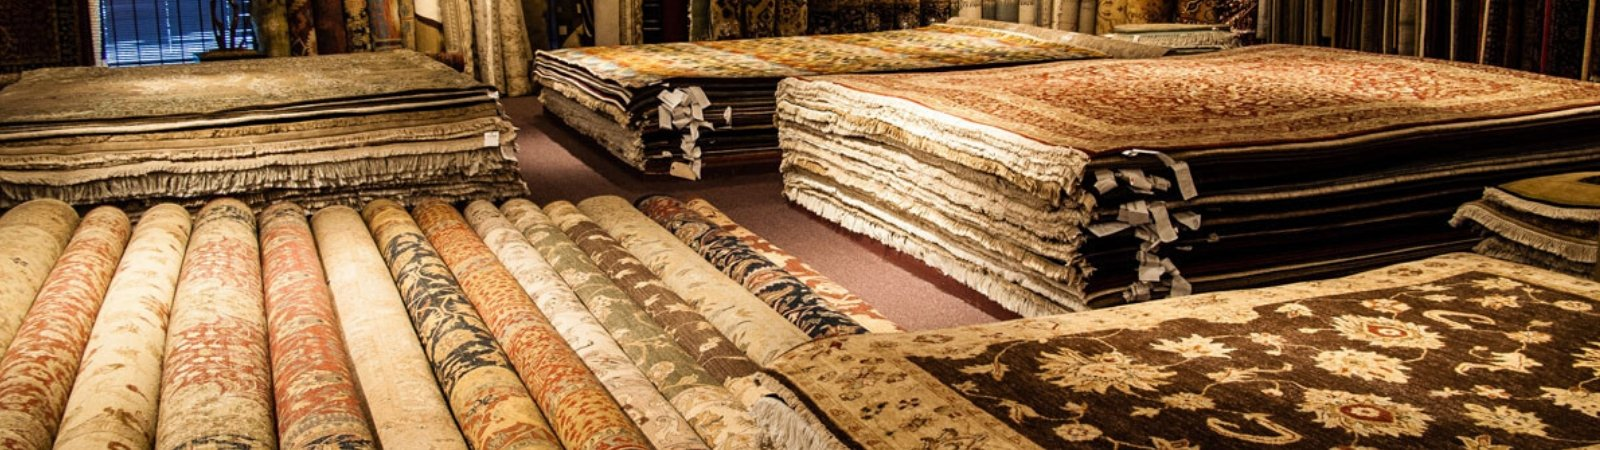 1000 of rugs in stock